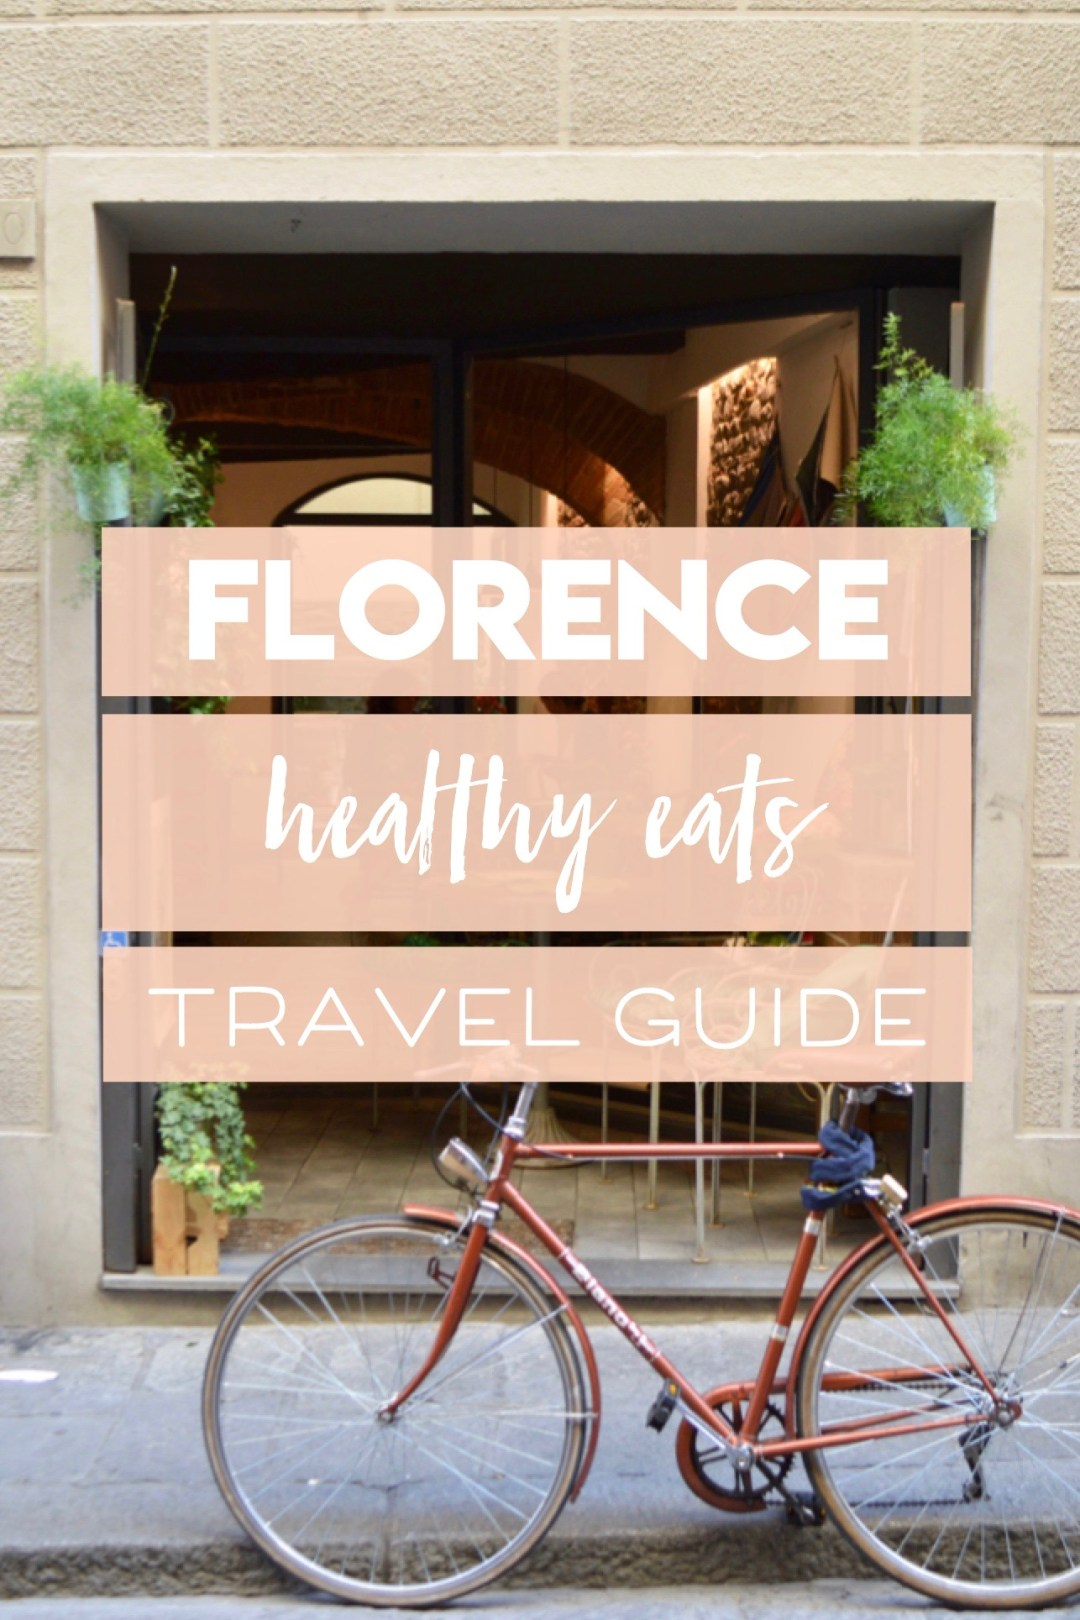 Healthy restaurant travel guide for Florence, Italy | gluten free, paleo, vegan options to stay healthy while traveling!